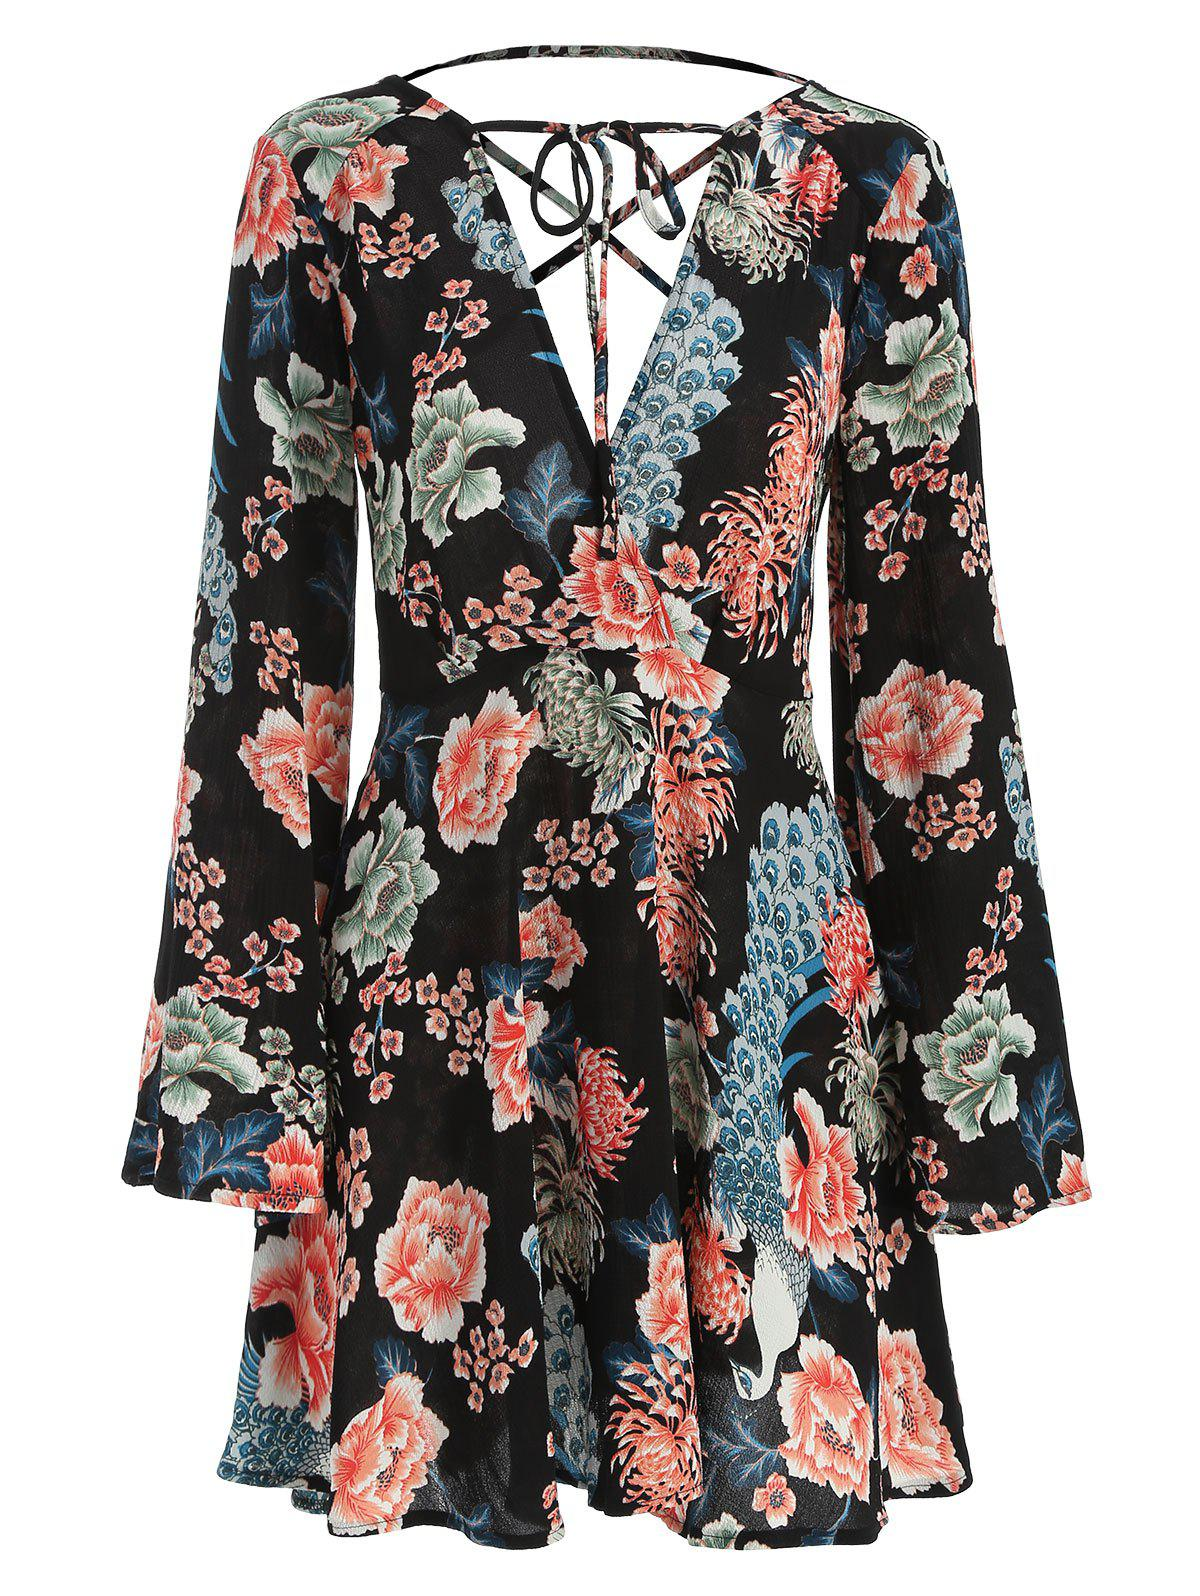 Trendy Criss Cross Floral Print Surplice Dress